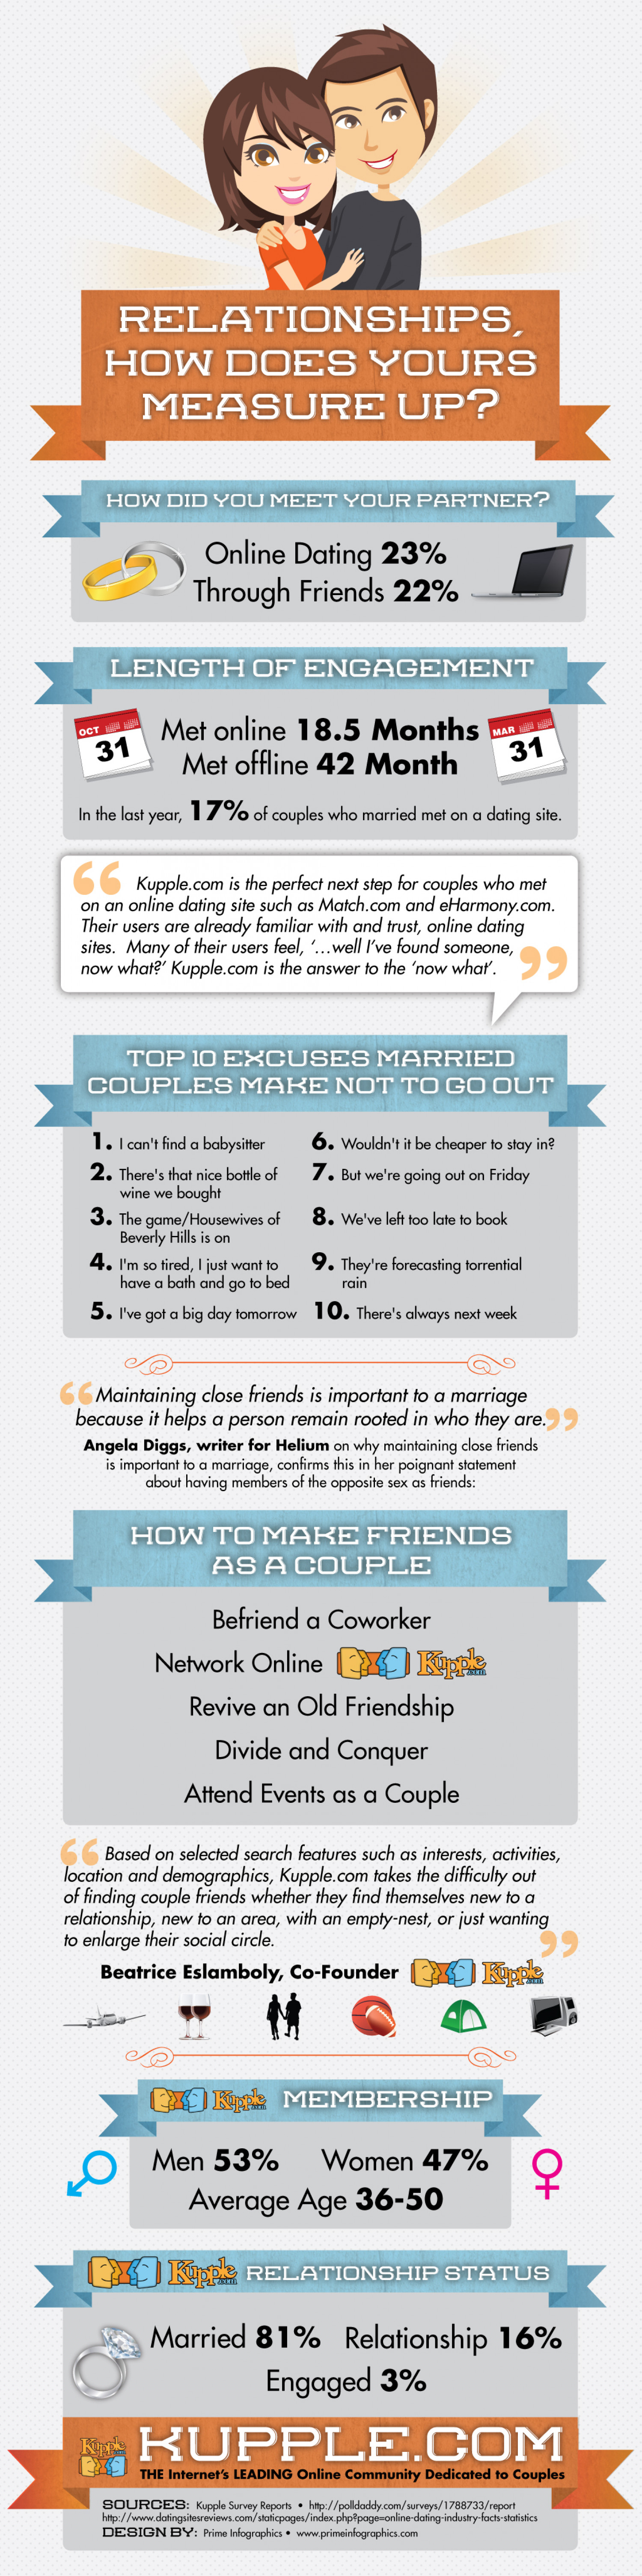 Relationships, How Does Yours Measure Up?  Infographic